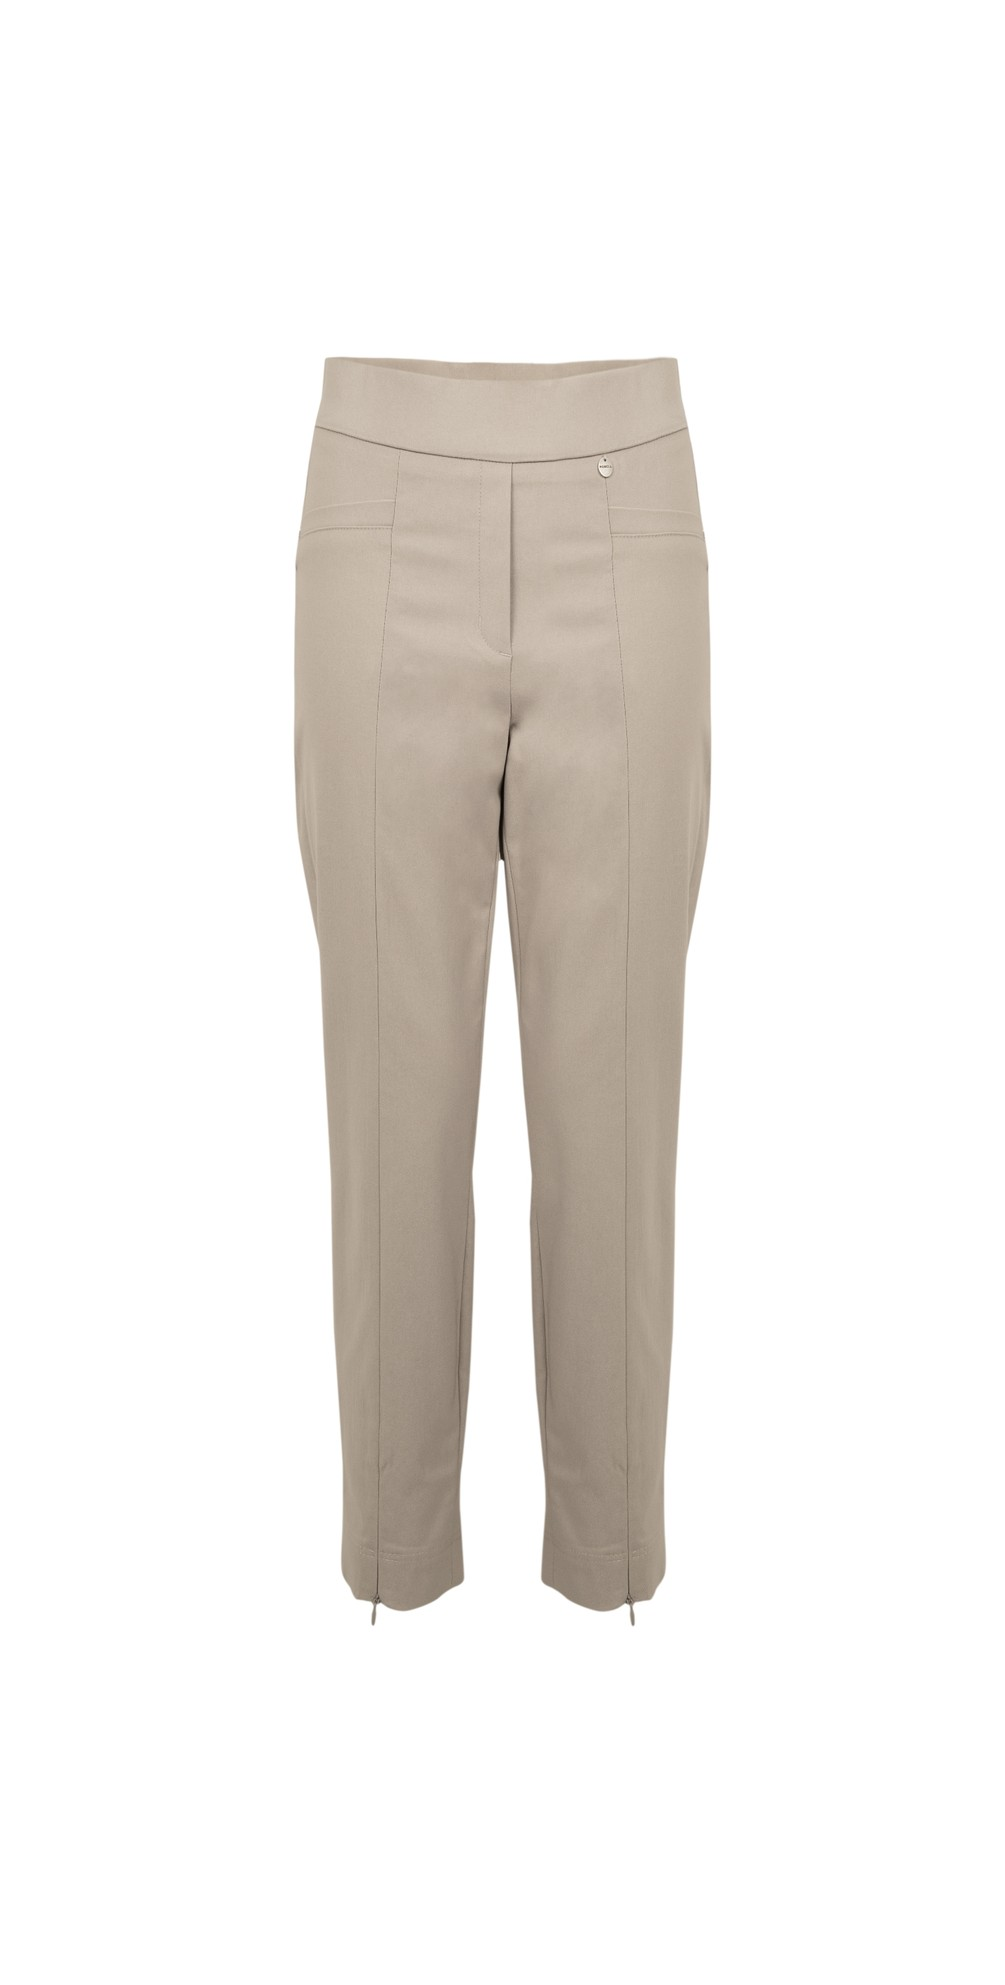 Nena 09 Putty Slimfit Fleece Lined Ankle Length Trouser main image